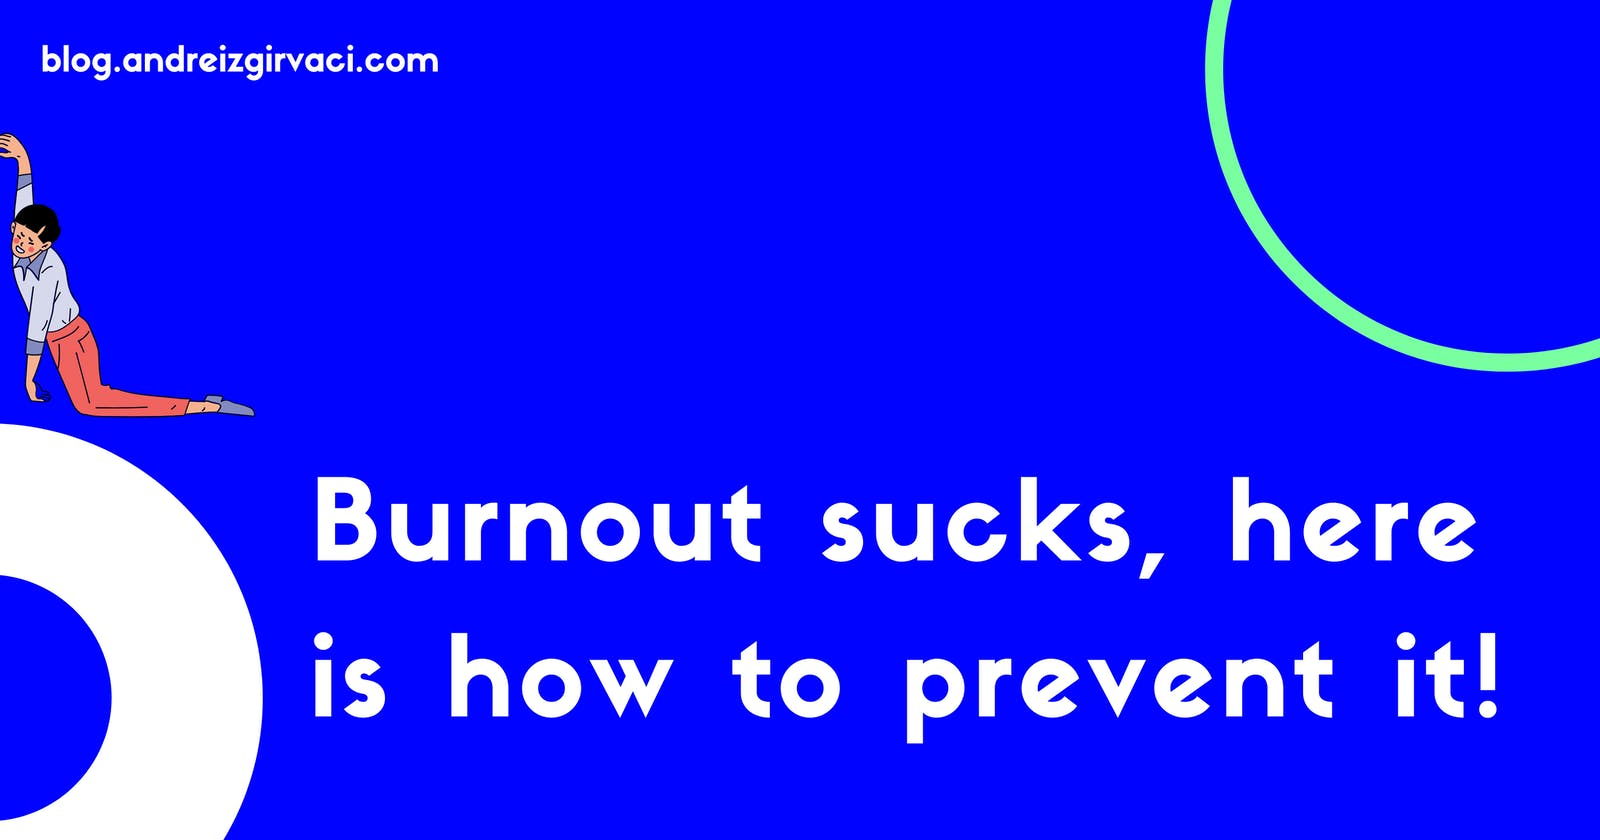 Burnout sucks, here is how to prevent it! 🤯